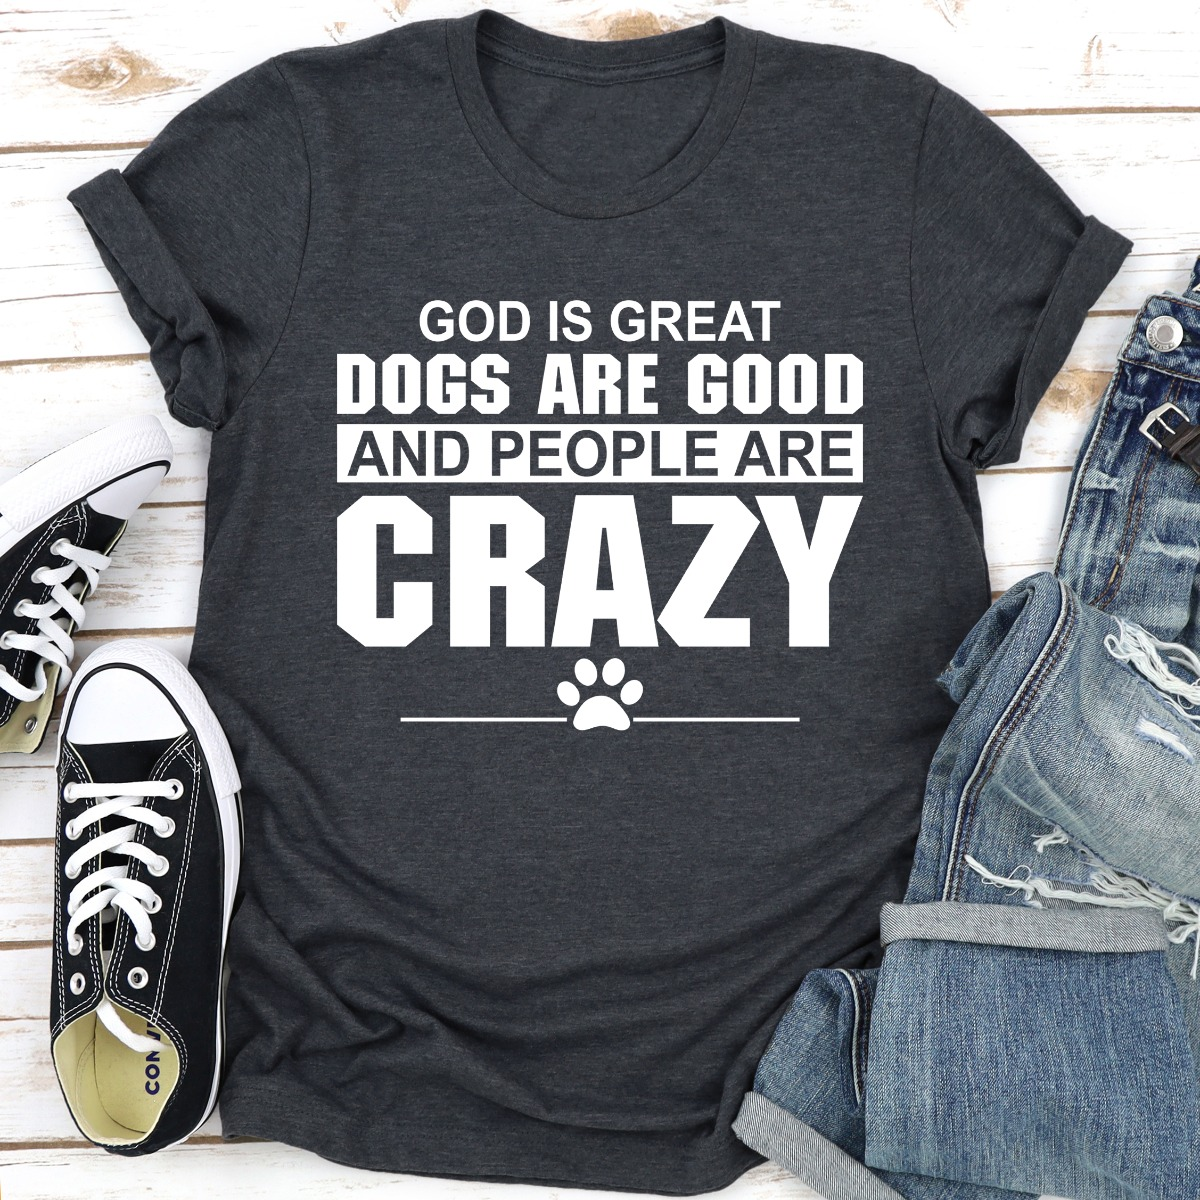 God Is Great Dogs Are Good And People Are Crazy (Dark Heather / S)